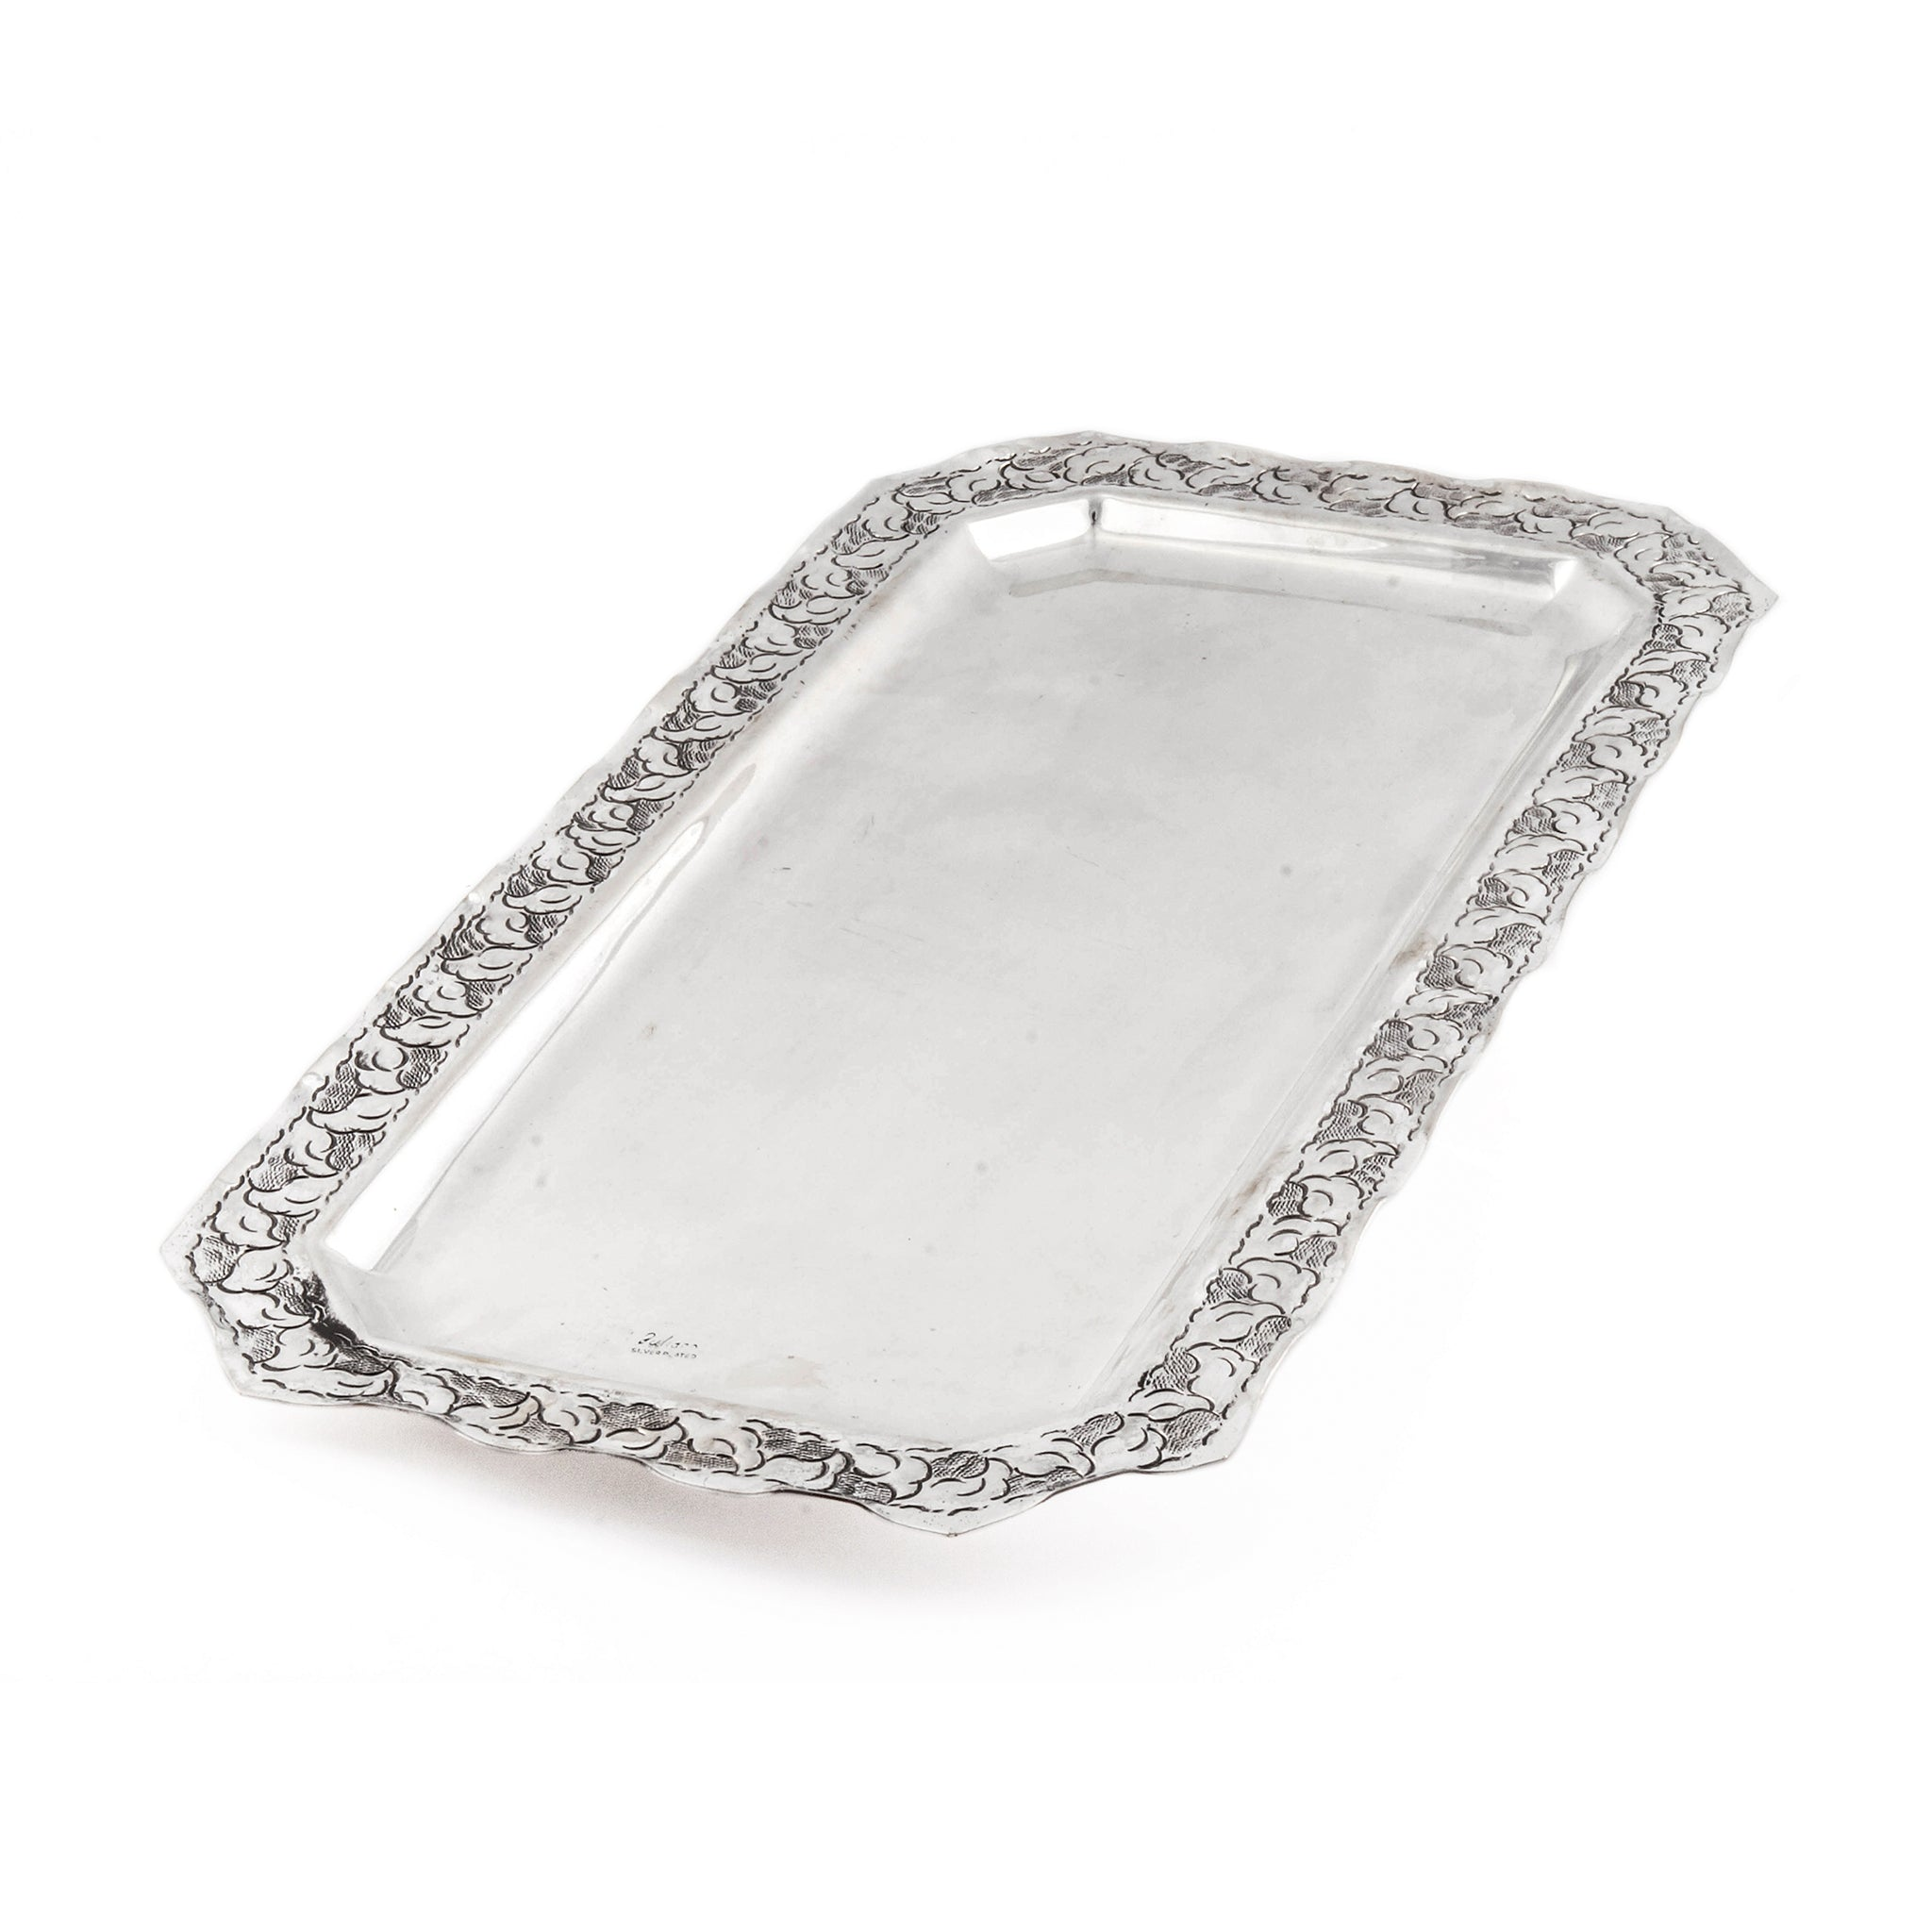 French Antique Silver Plated Tray Khan Al Maghraby